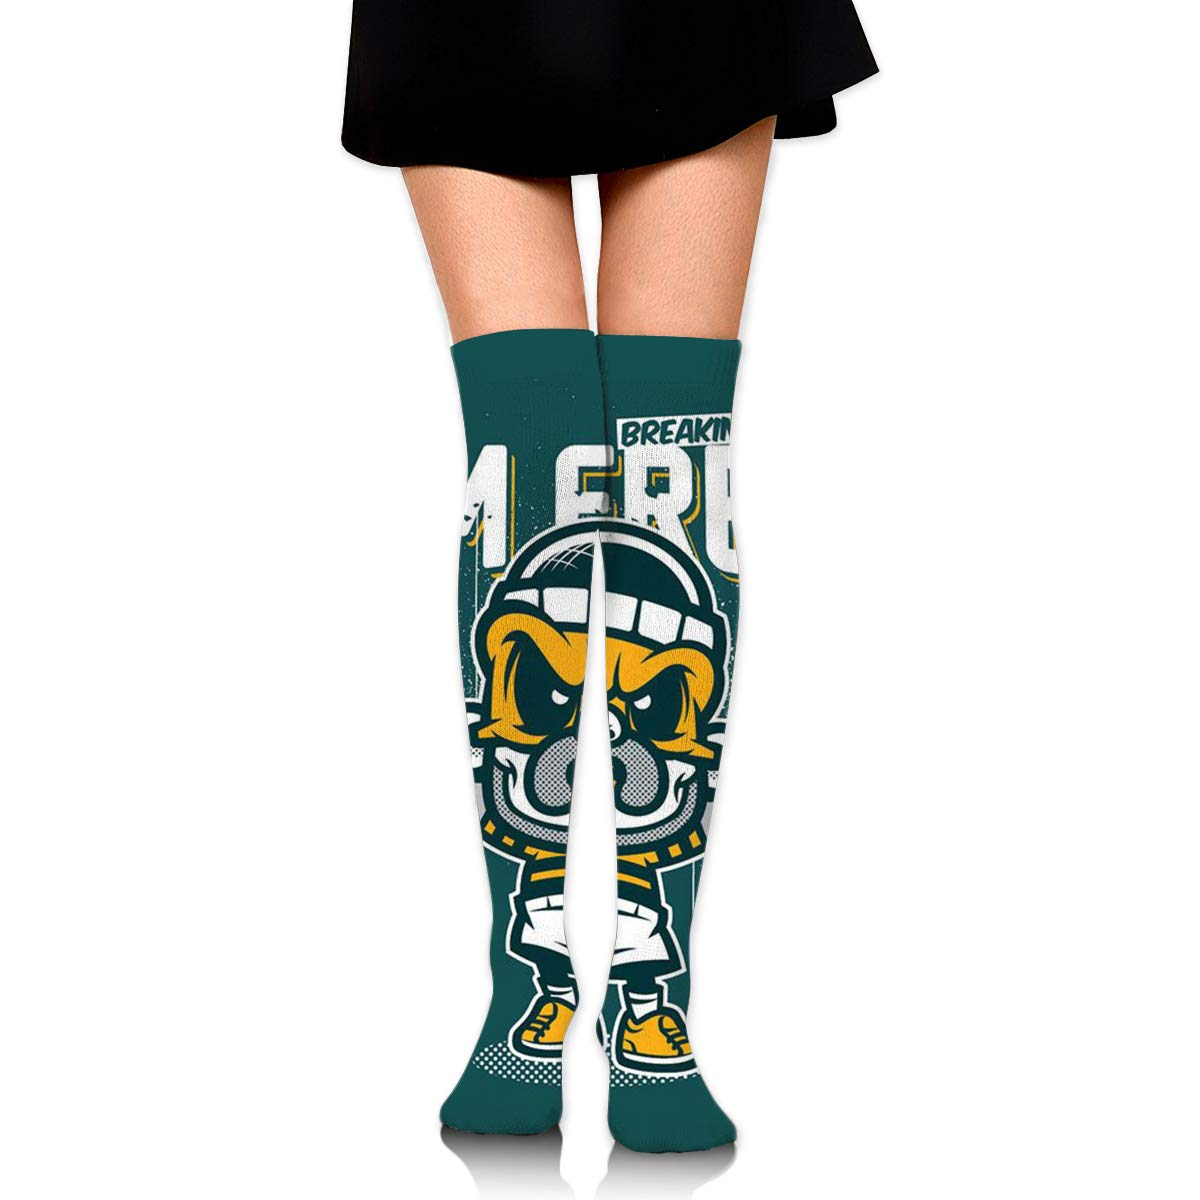 IM FREE Long Tight Thigh High Socks Over The Knee High Boot Stockings Leg Warmers